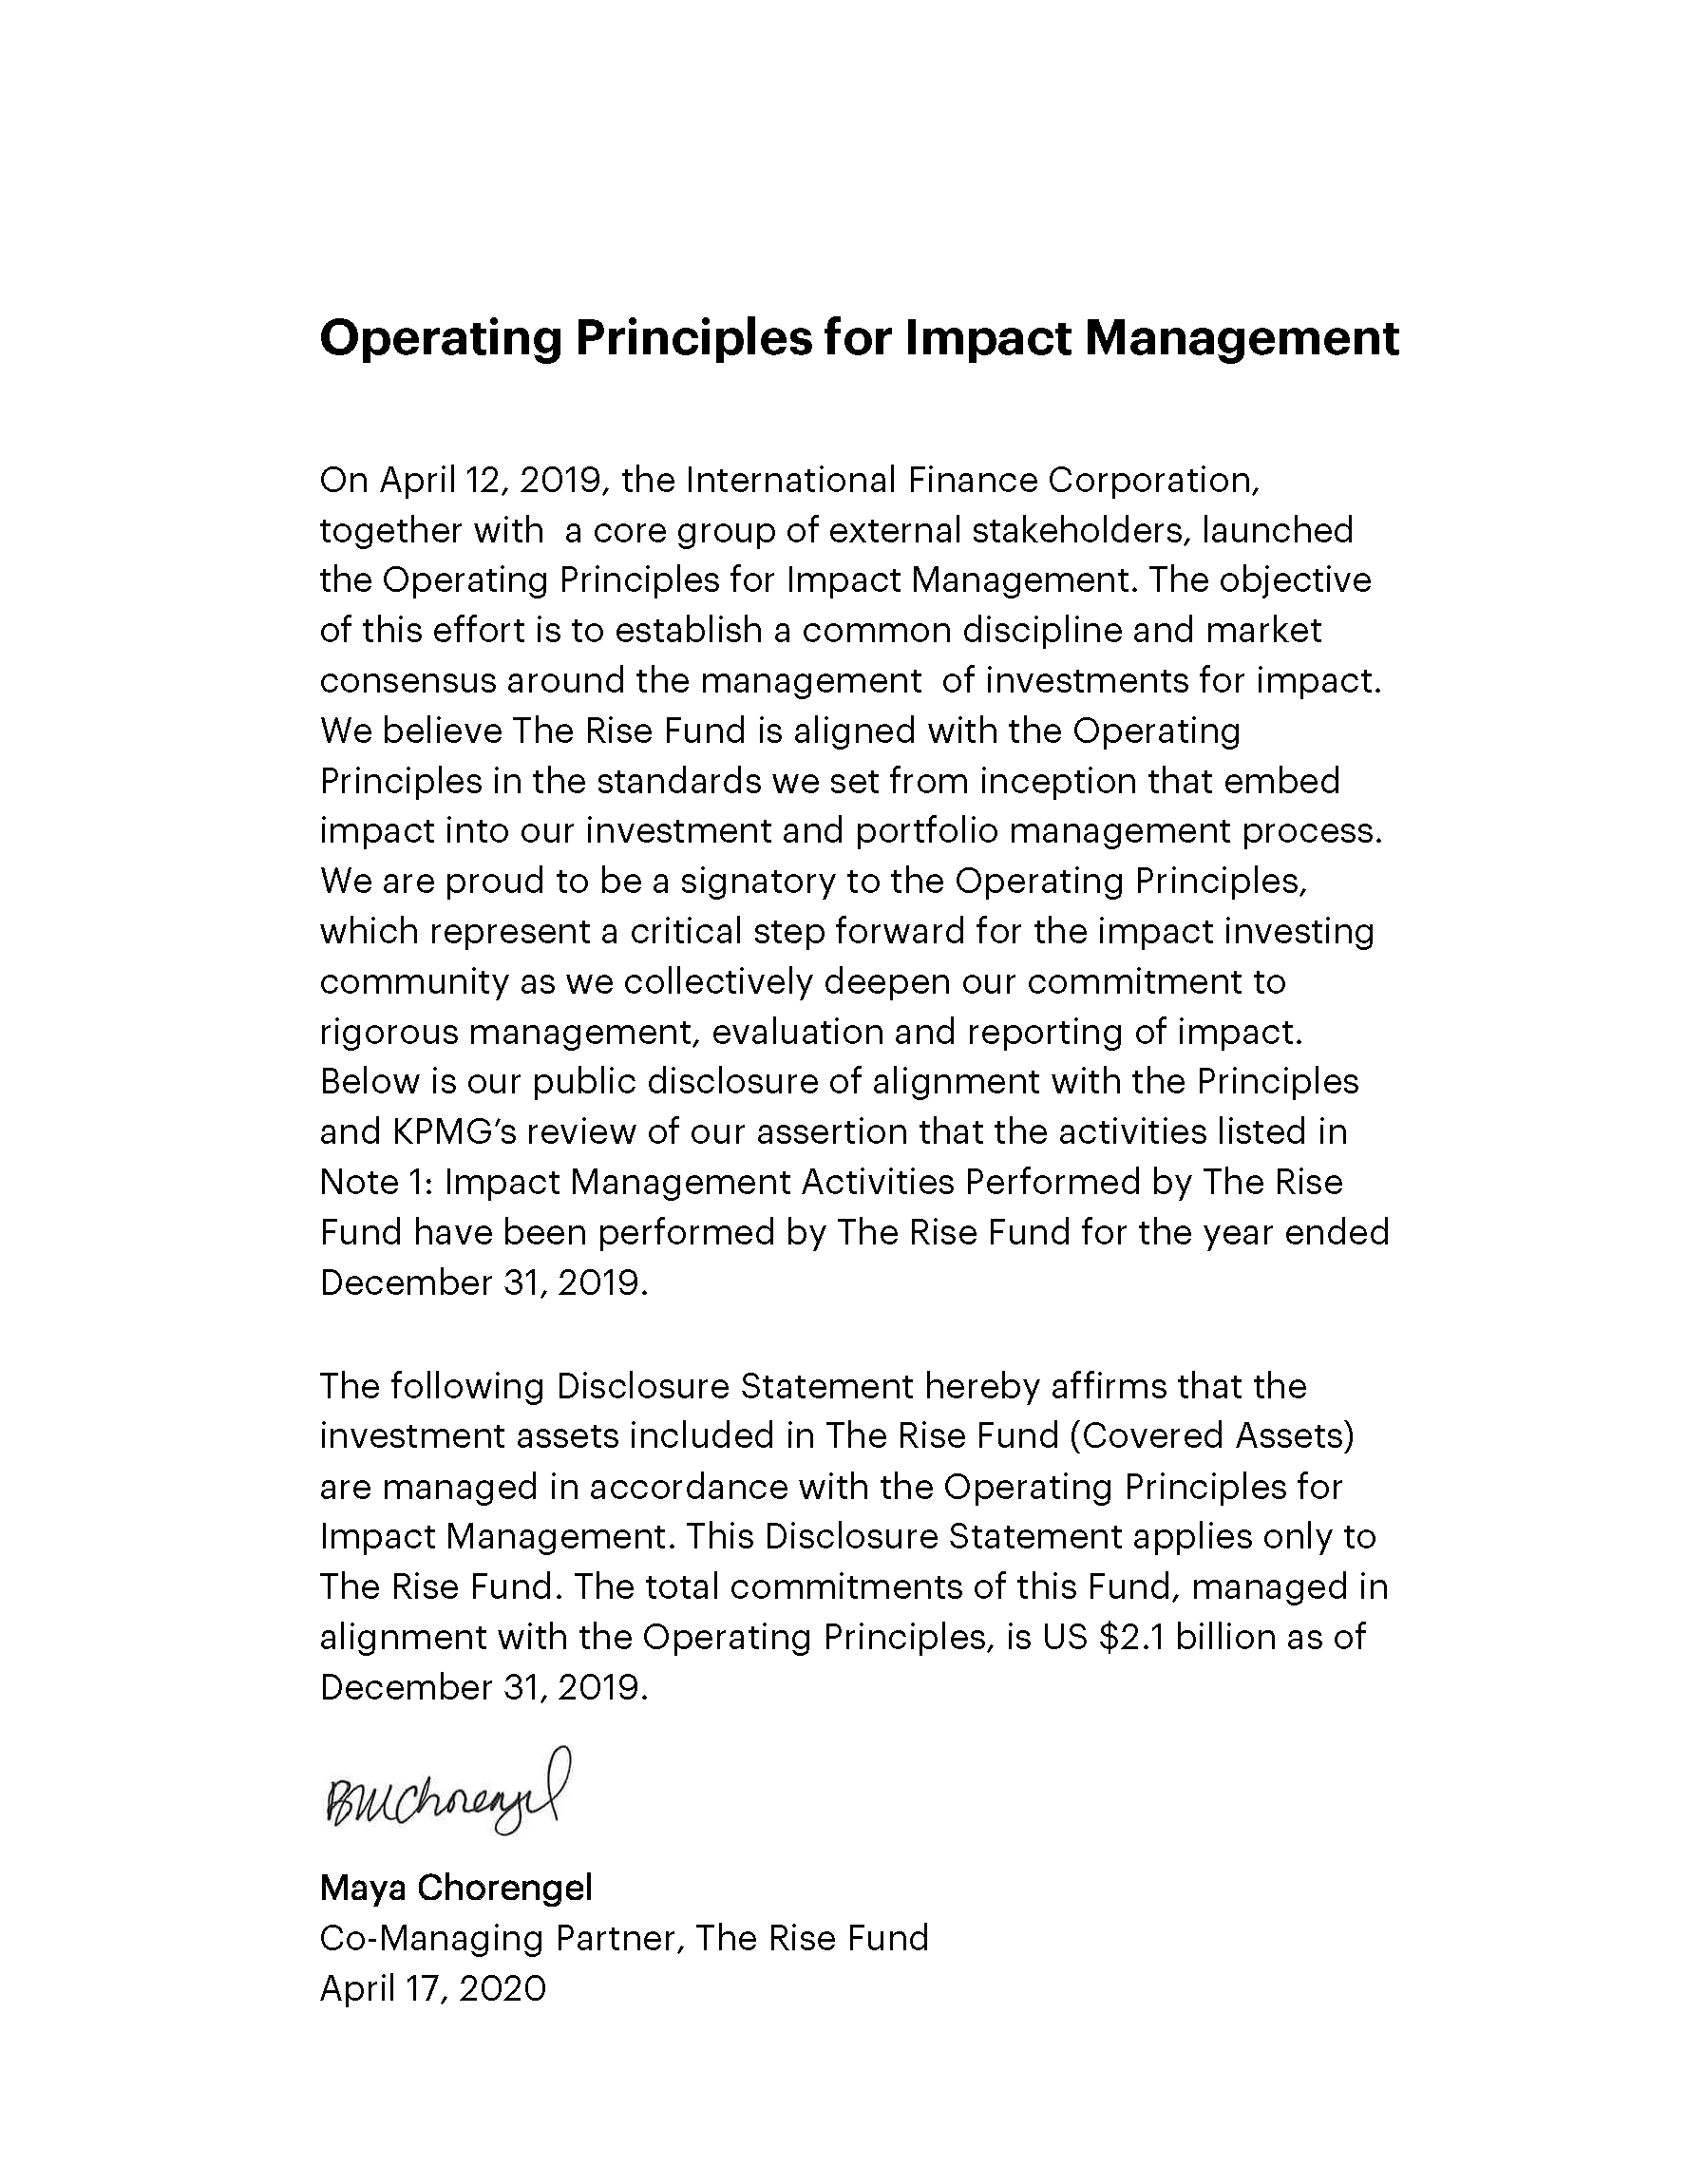 Image of text - full text of Operating Principles for Impact Management image pasted below